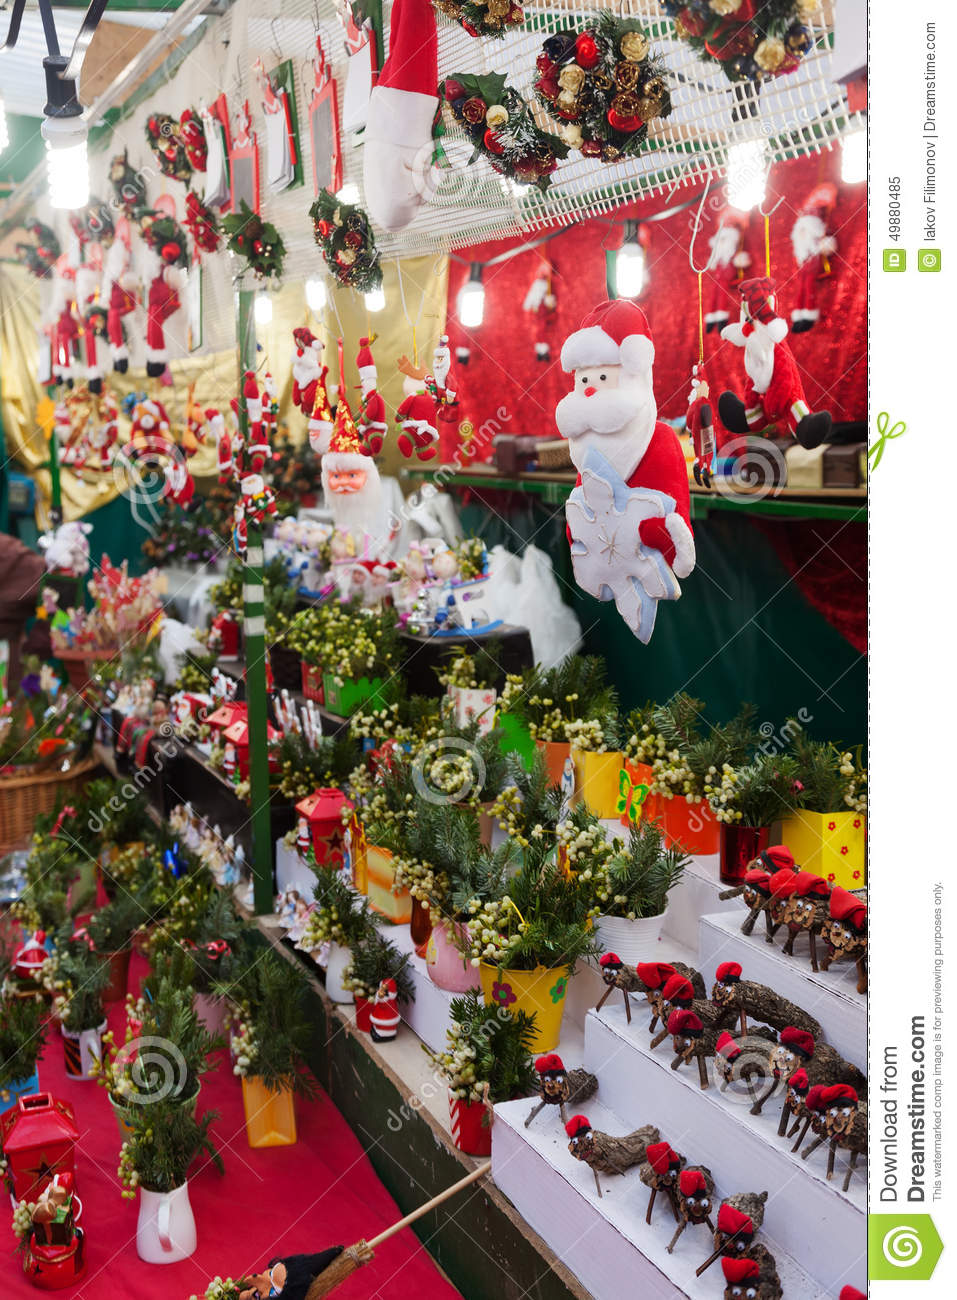 floral decorations and traditional gifts in christmas market